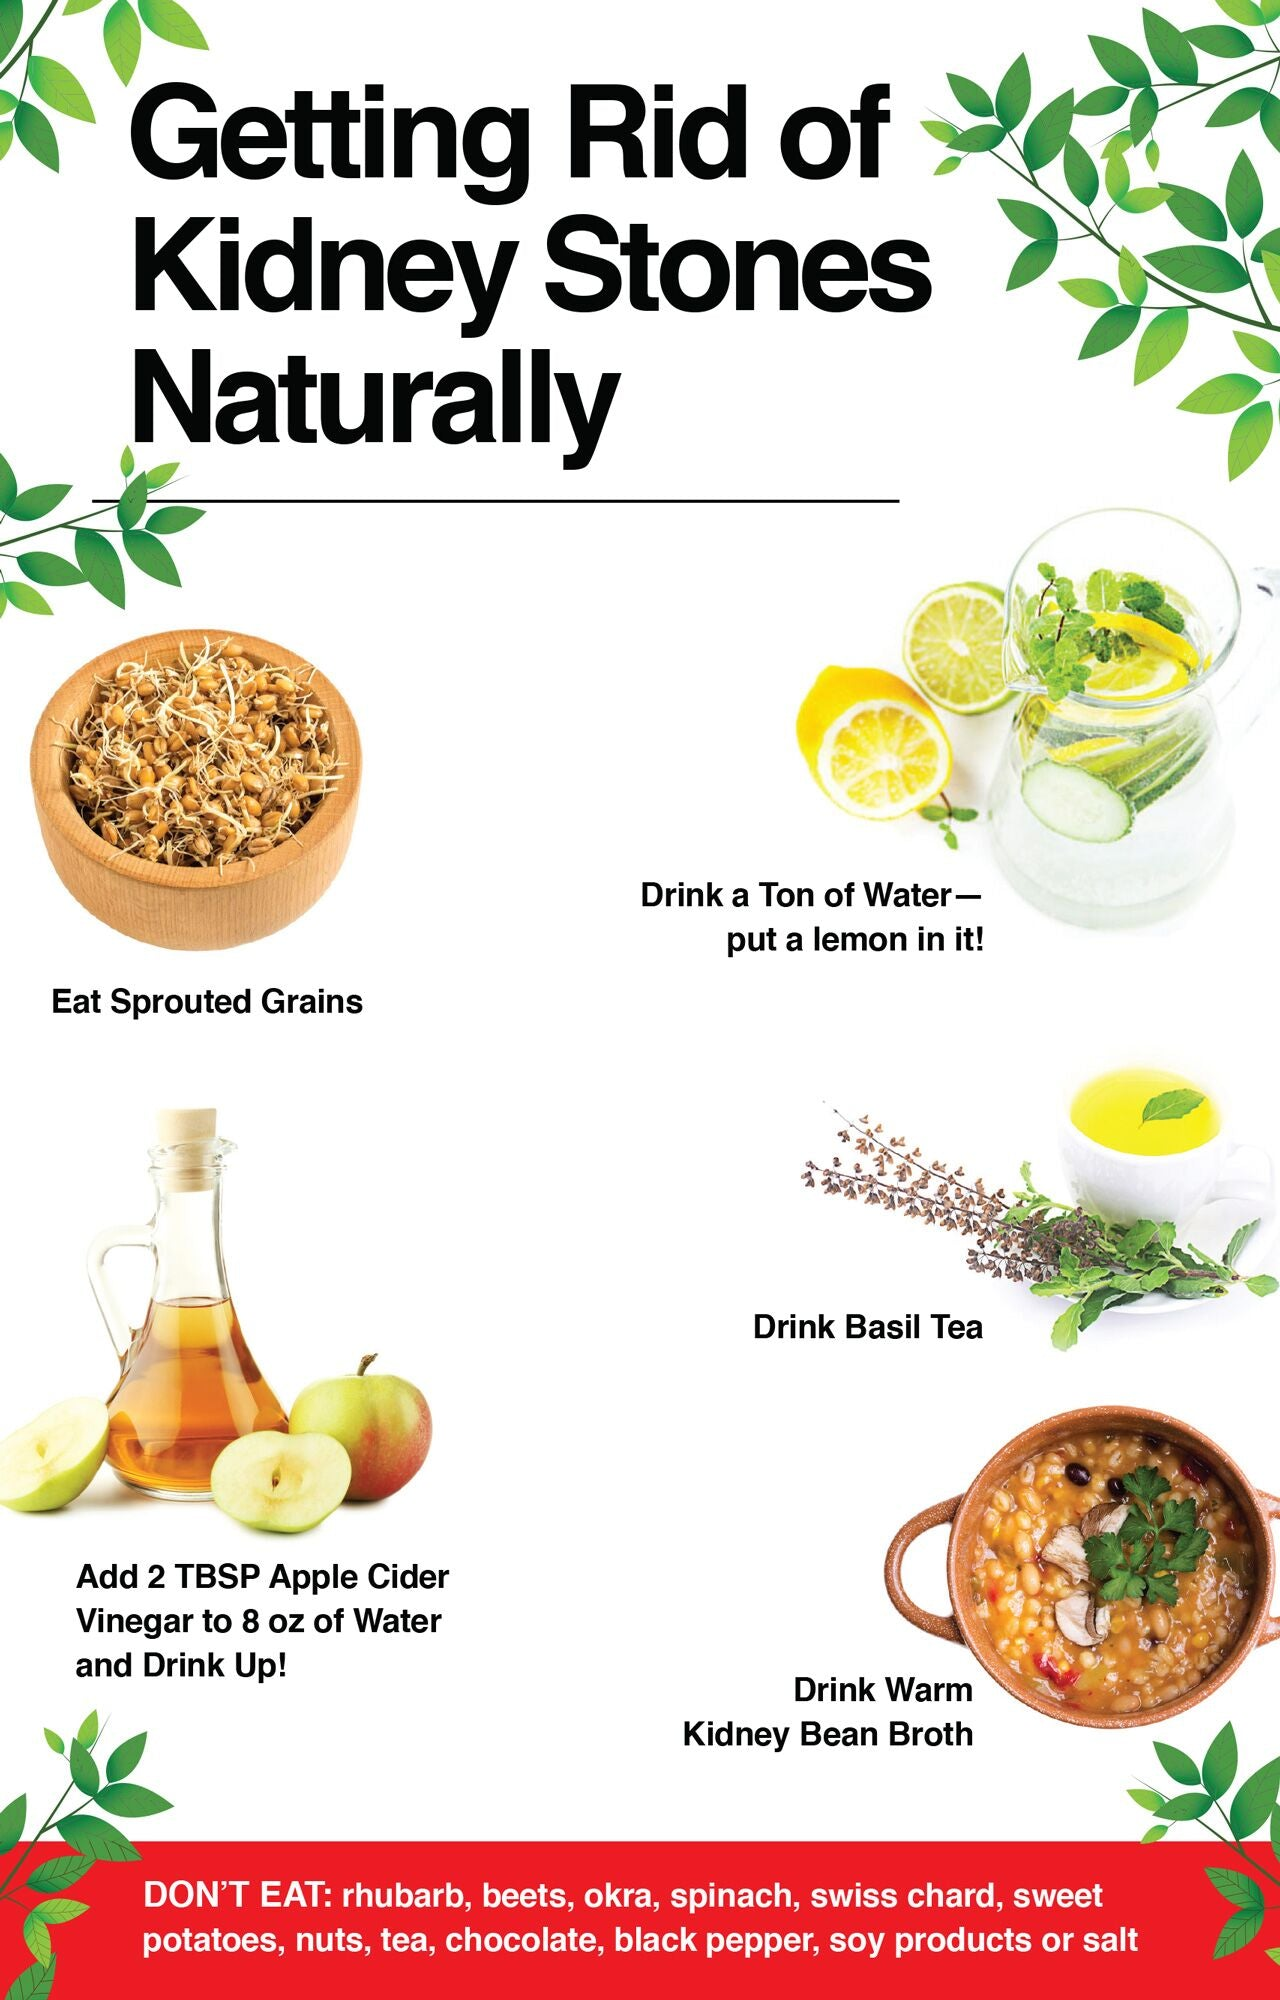 Getting rid of kidney stones naturally